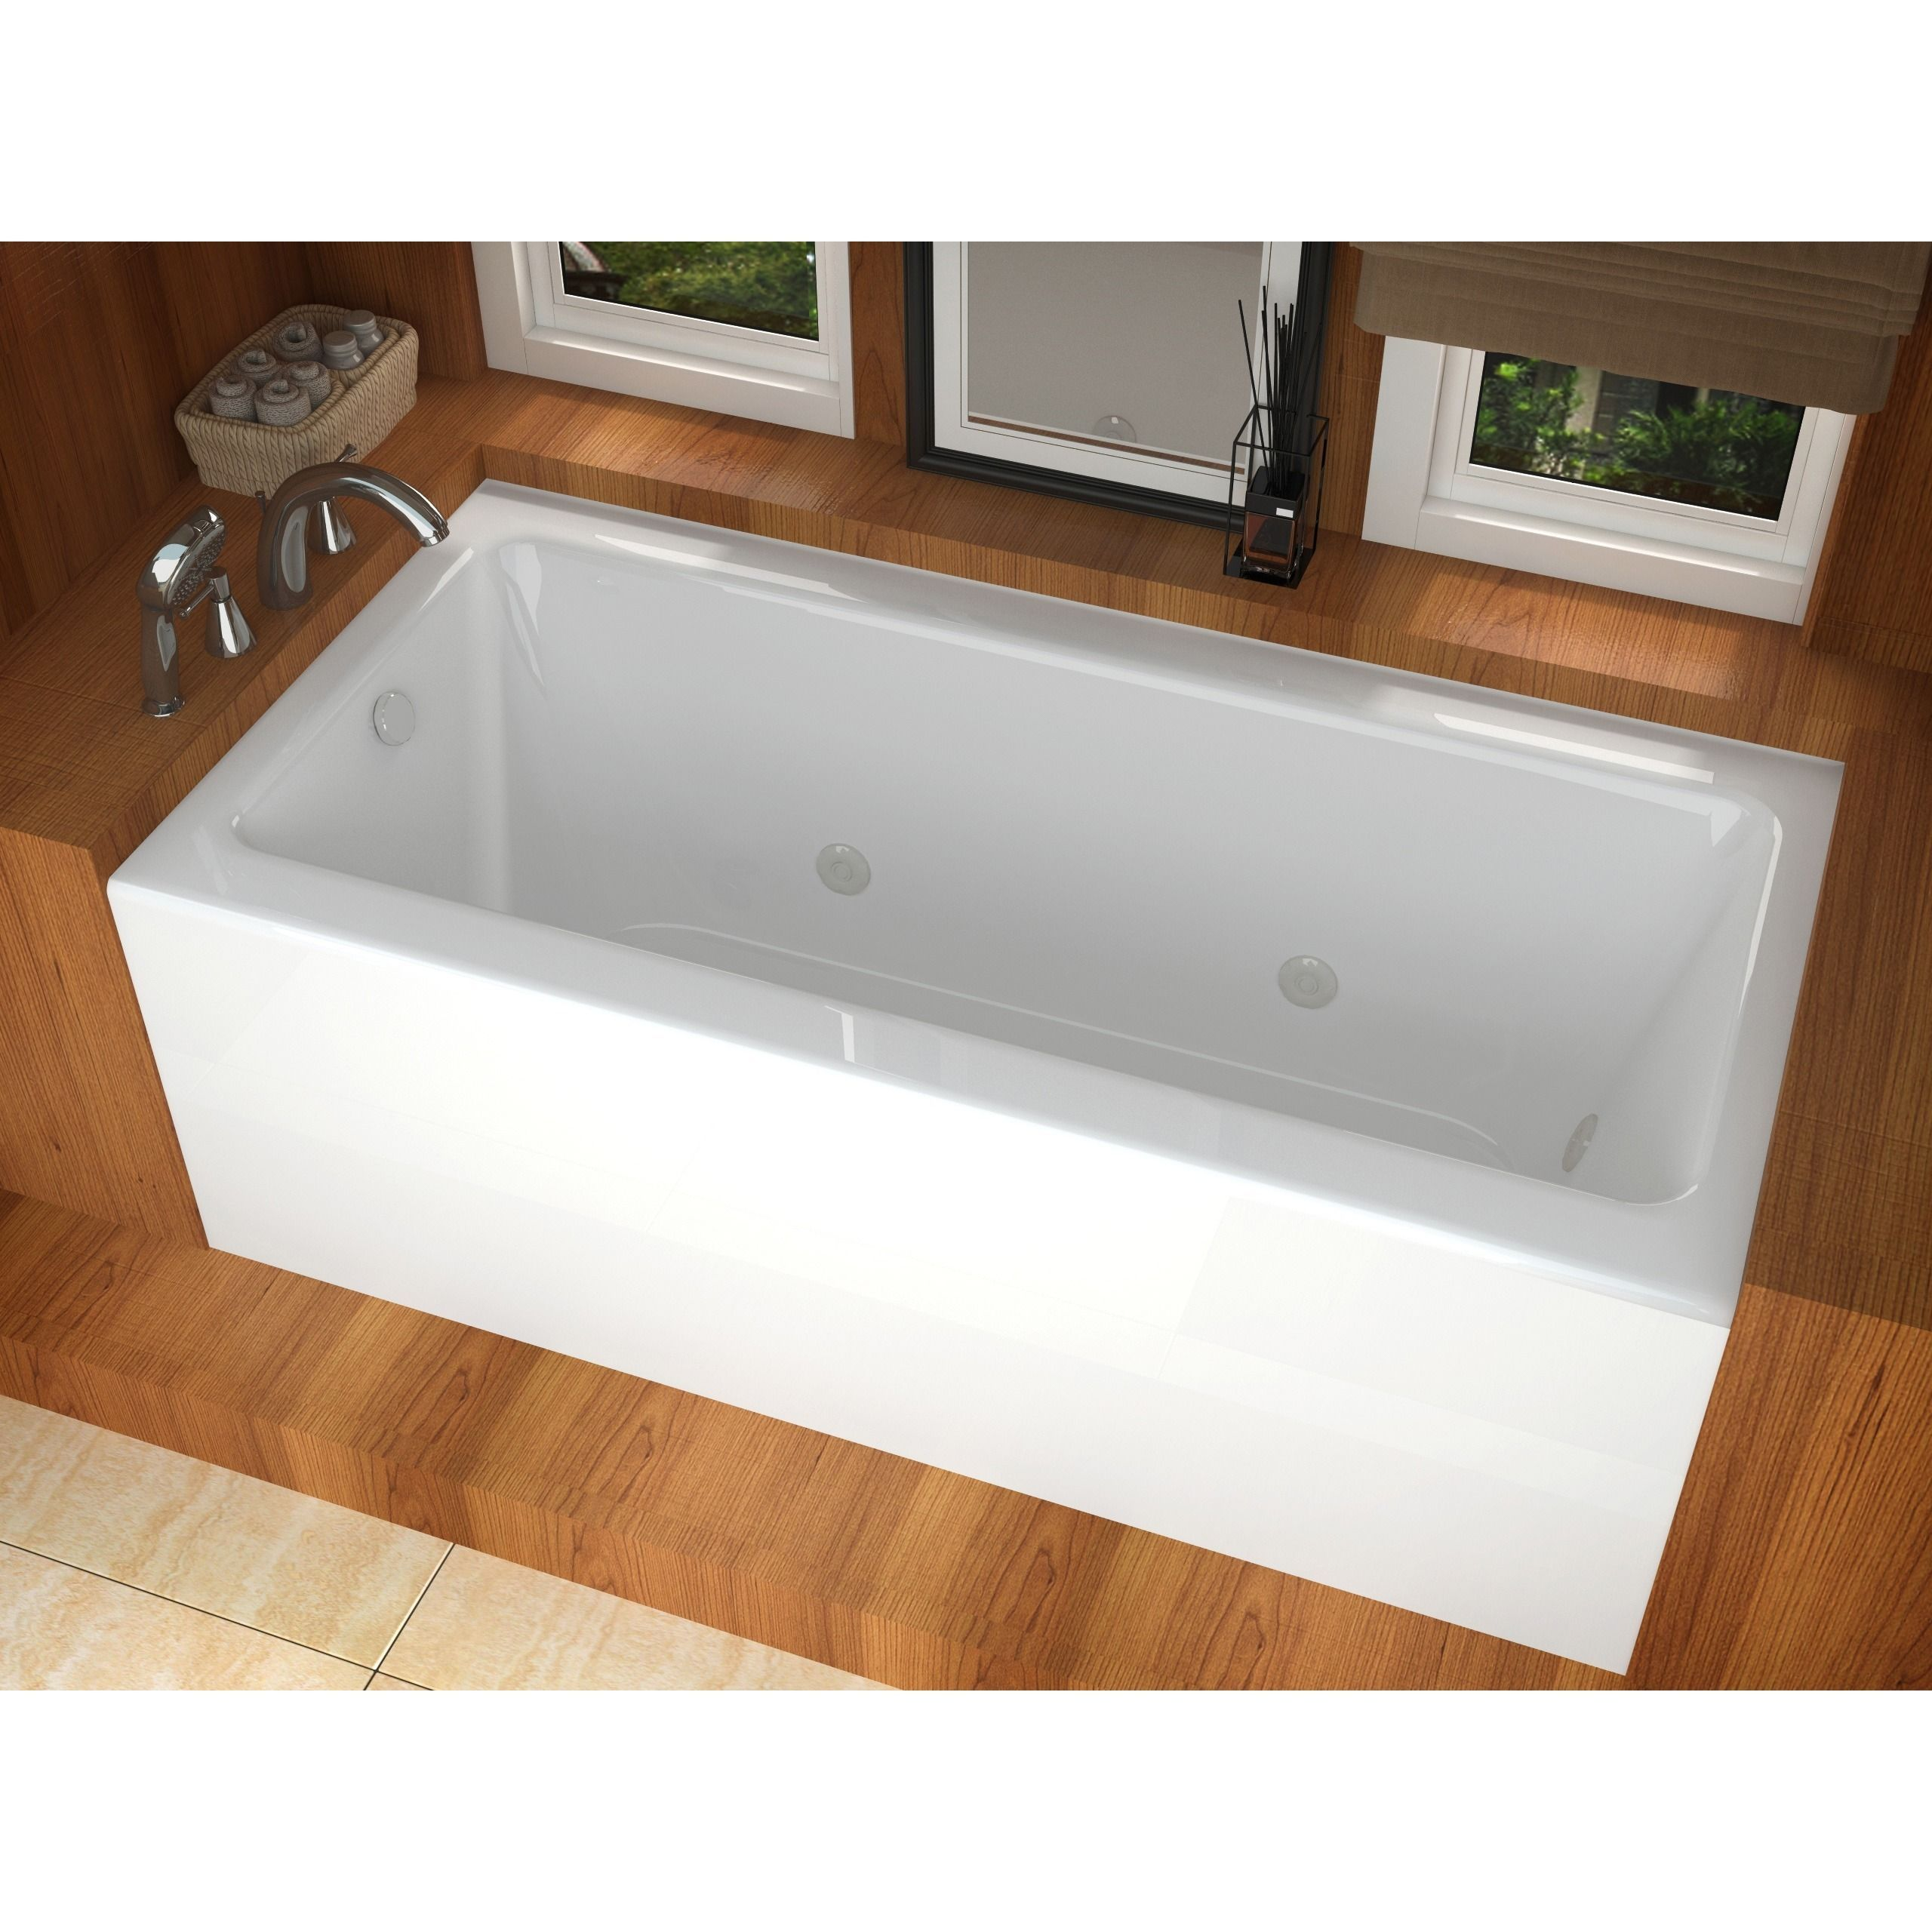 Atlantis Whirlpools Soho 30 x 60 Front Skirted Whirlpool Tub with ...